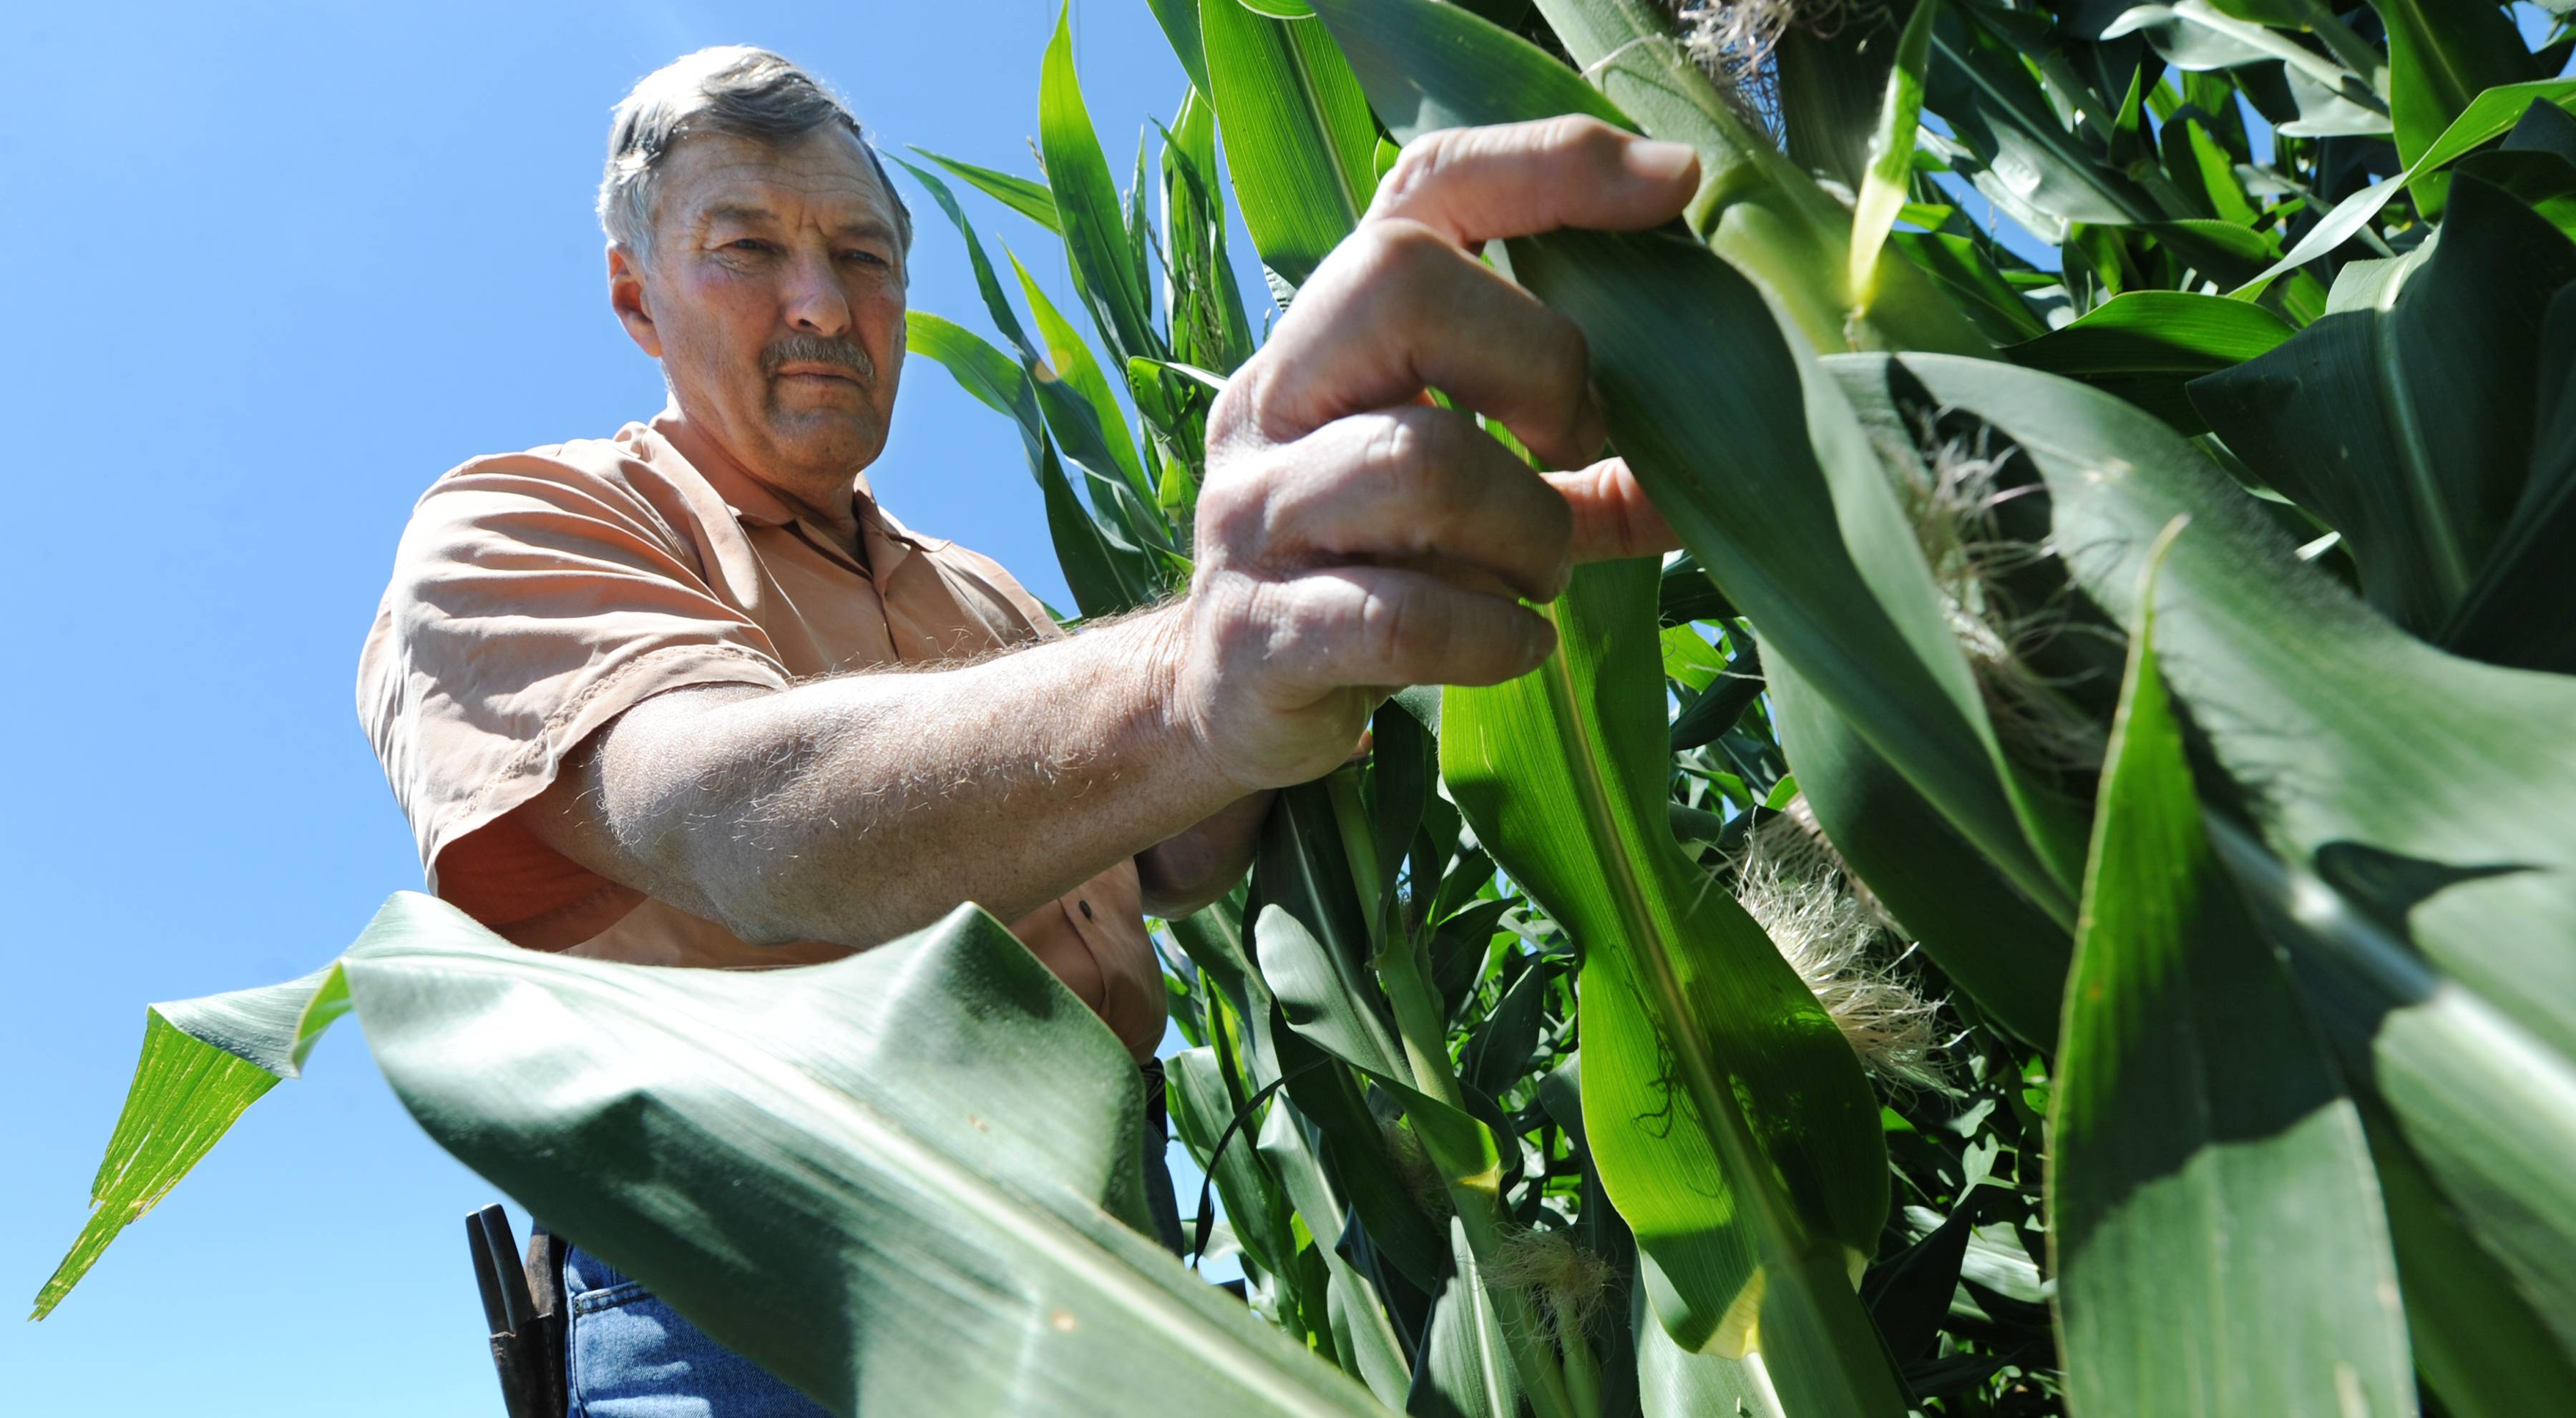 Neal Bredehoeft, of Alma, Mo., examines his corn for evidence of Japanese beetles, which he said are a serious concern for corn farmers. Some powerful agriculture interests want to declare farming a right at the state level as part of a wider campaign to fortify the ag industry against activists.